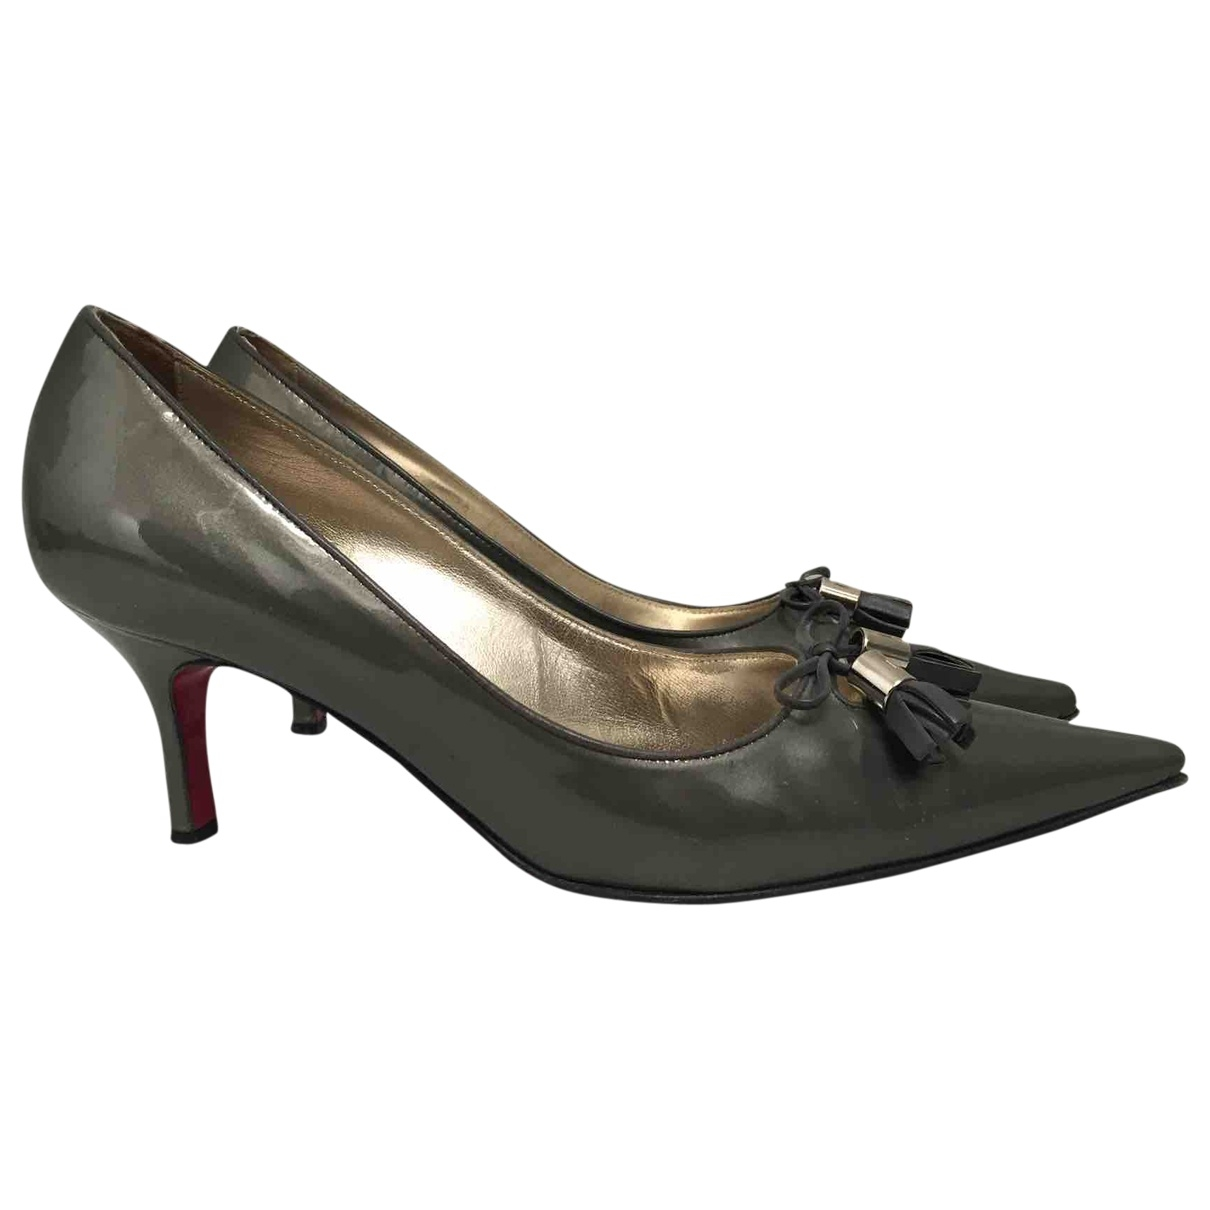 Luciano Padovan \N Grey Patent leather Heels for Women 36 EU